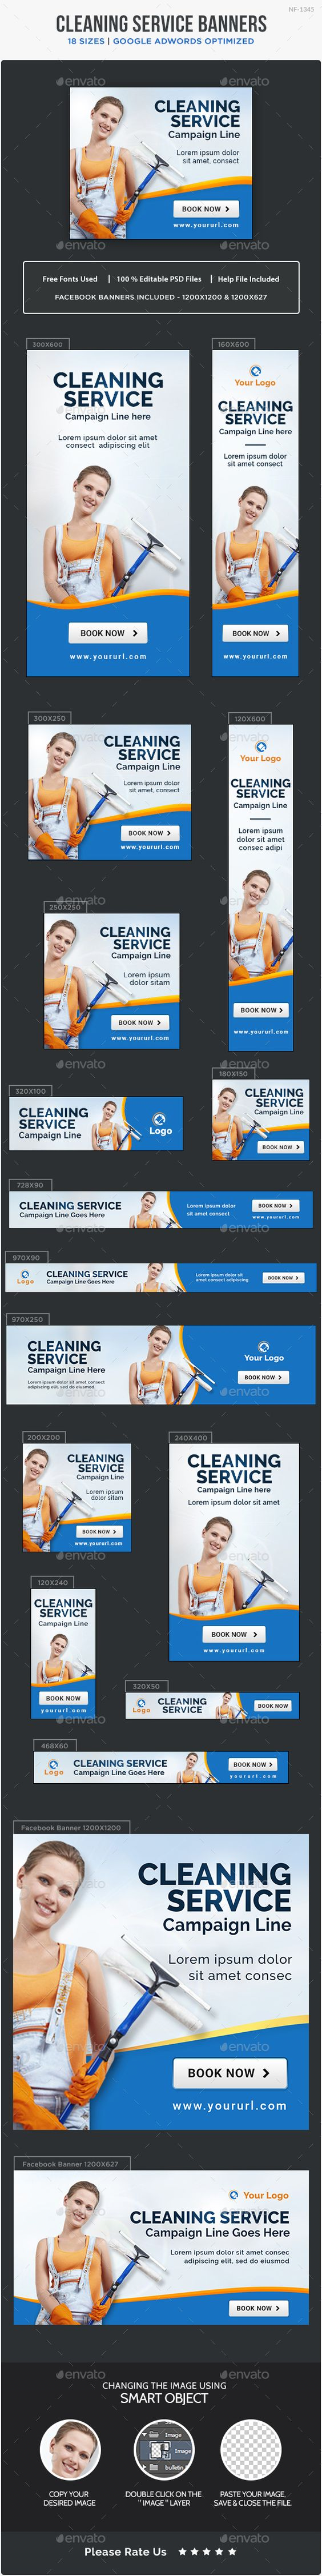 cleaning service banners cleaning banners and design templates cleaning service banners design template banners ads web template psd here